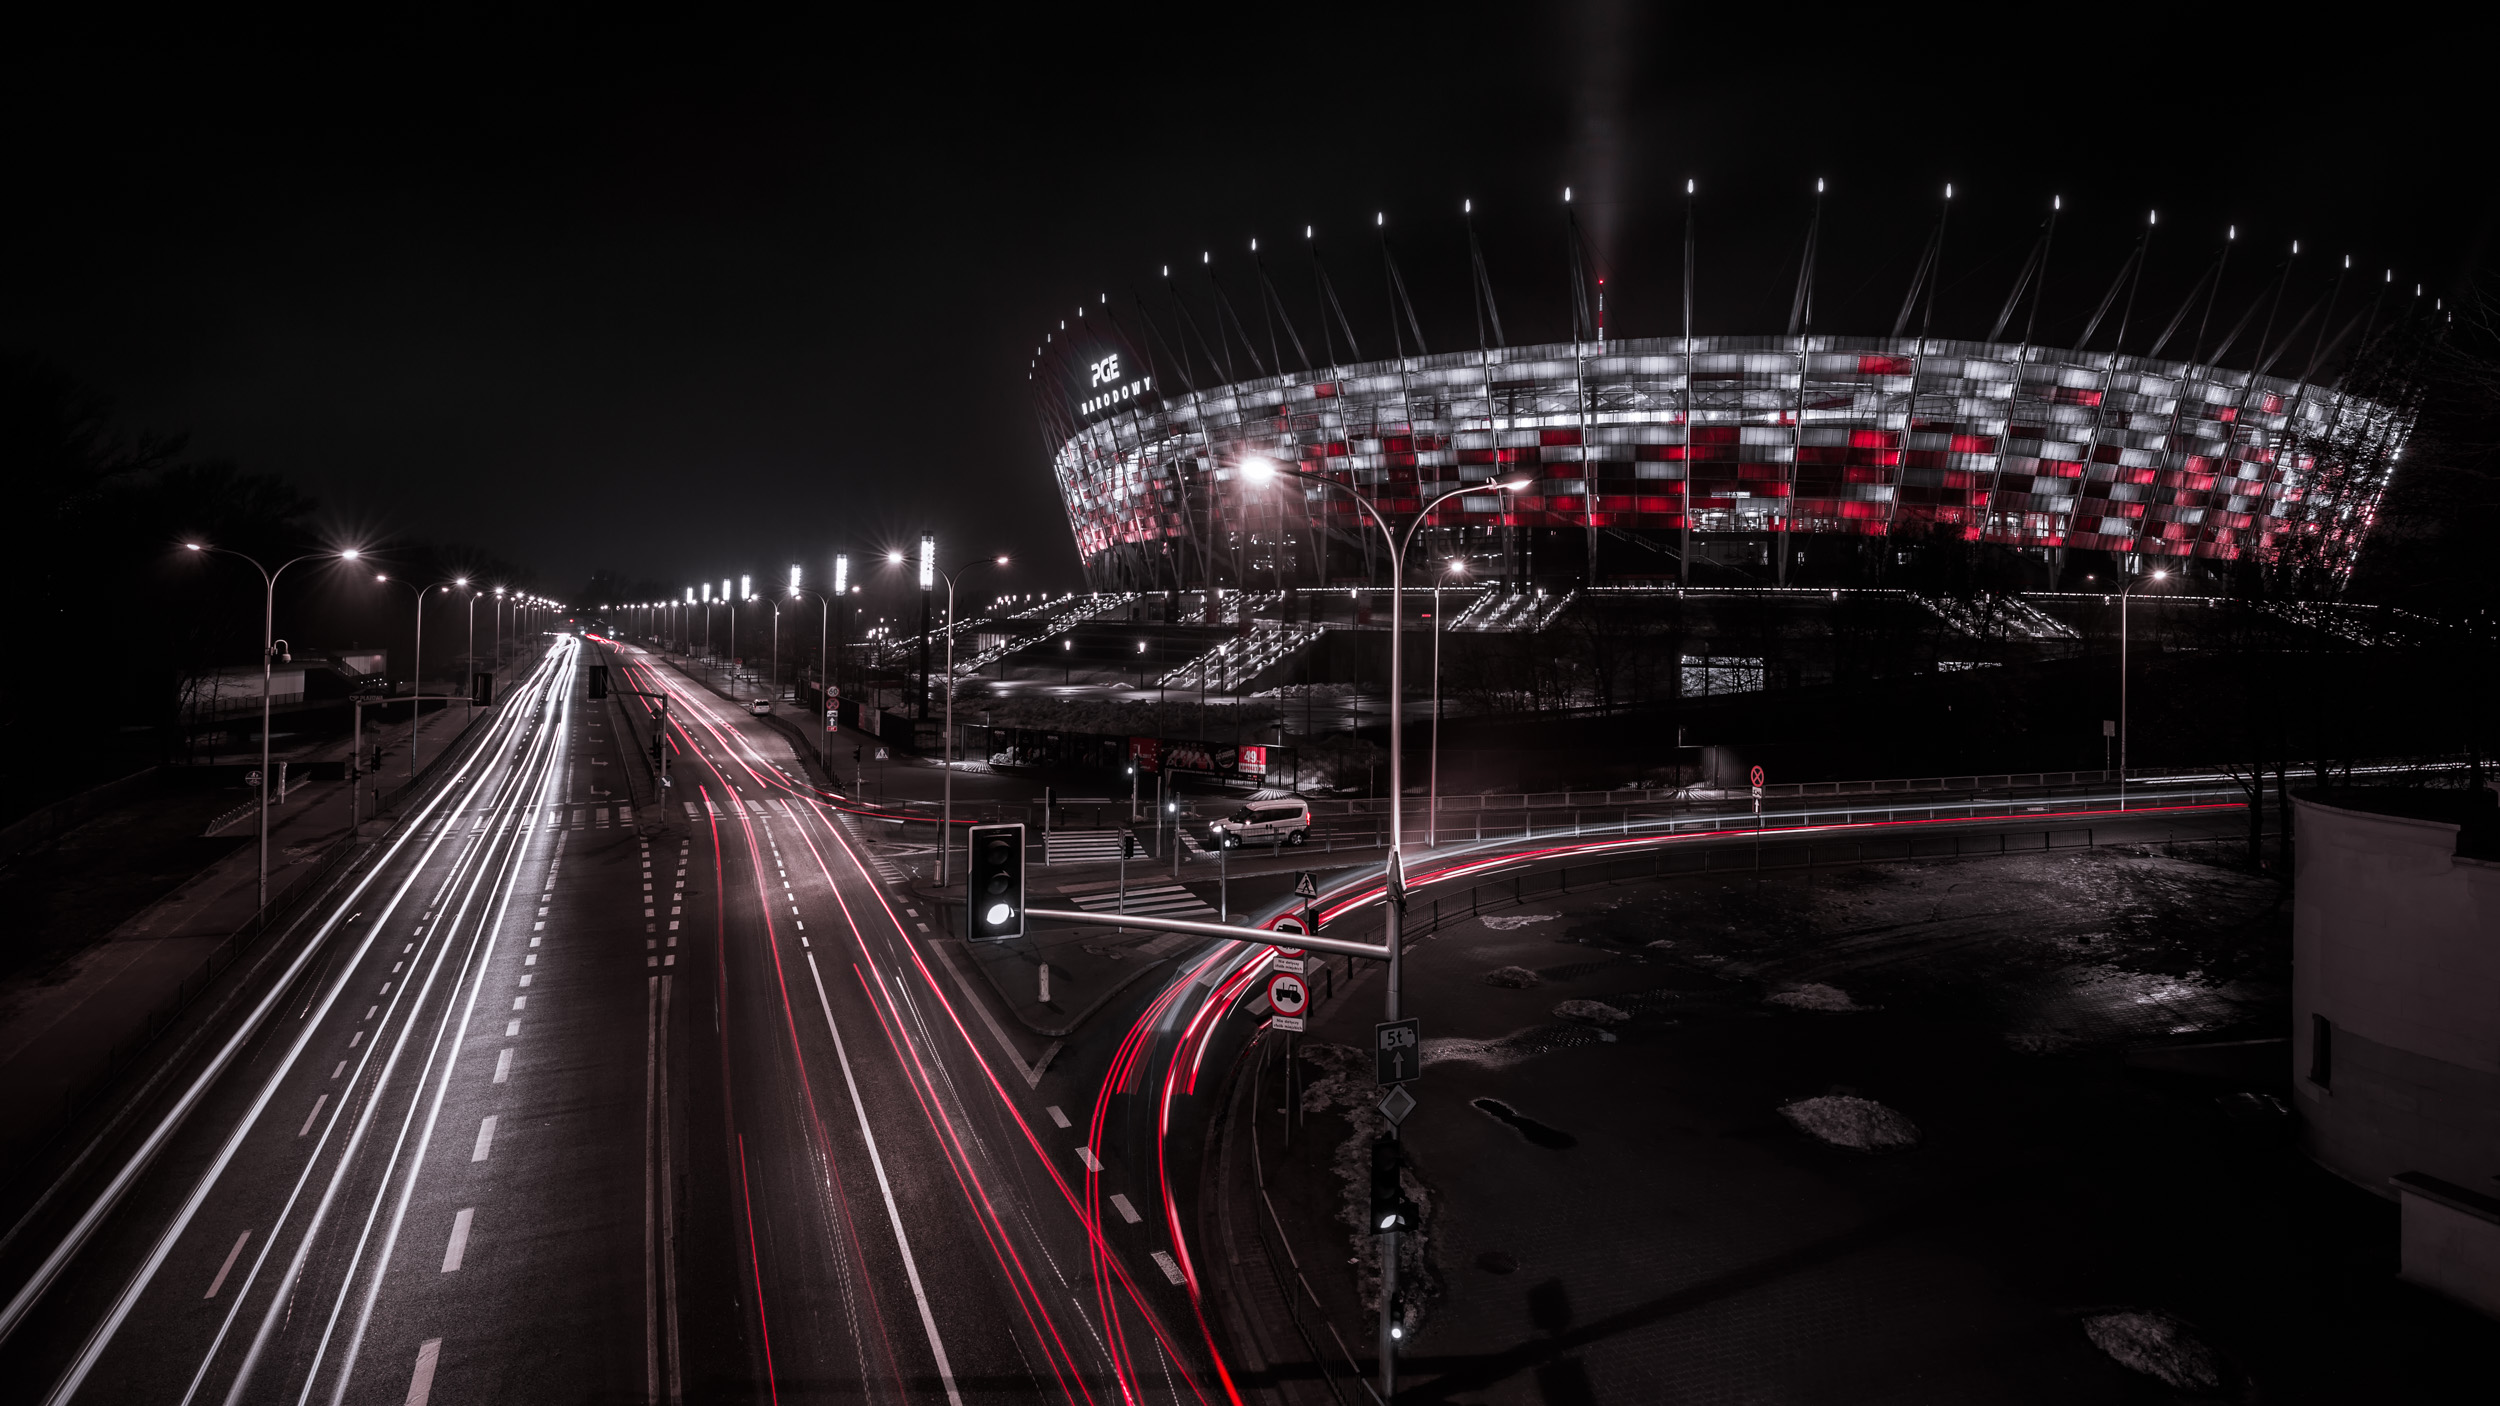 PGE Narodowy - National Stadium of Warsaw, Poland - Architecture & City Photography